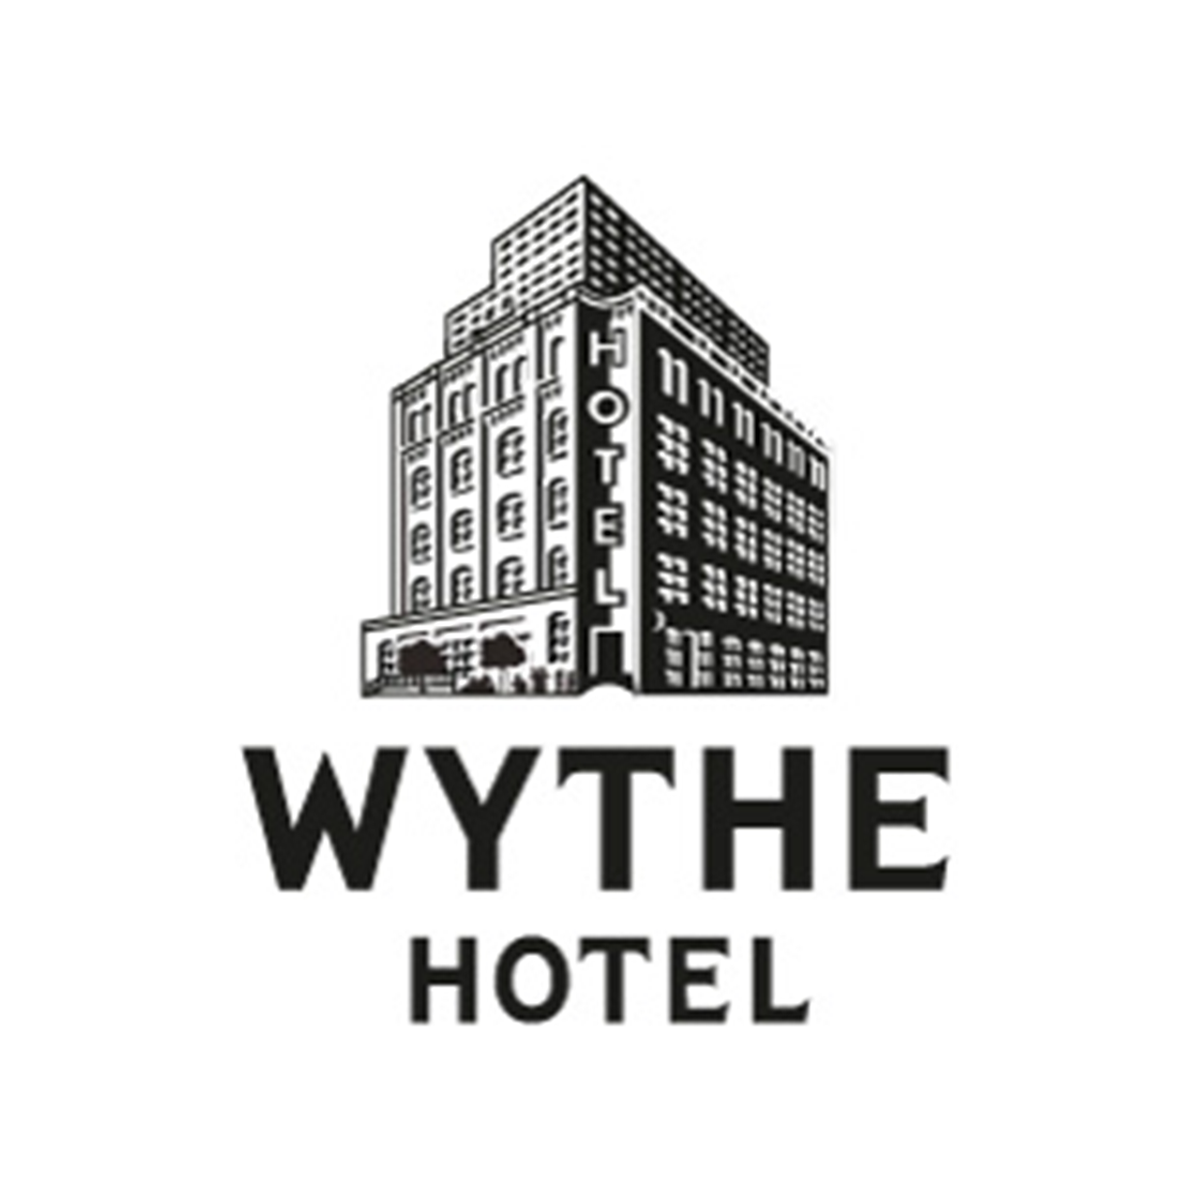 Wythe Hotel.png